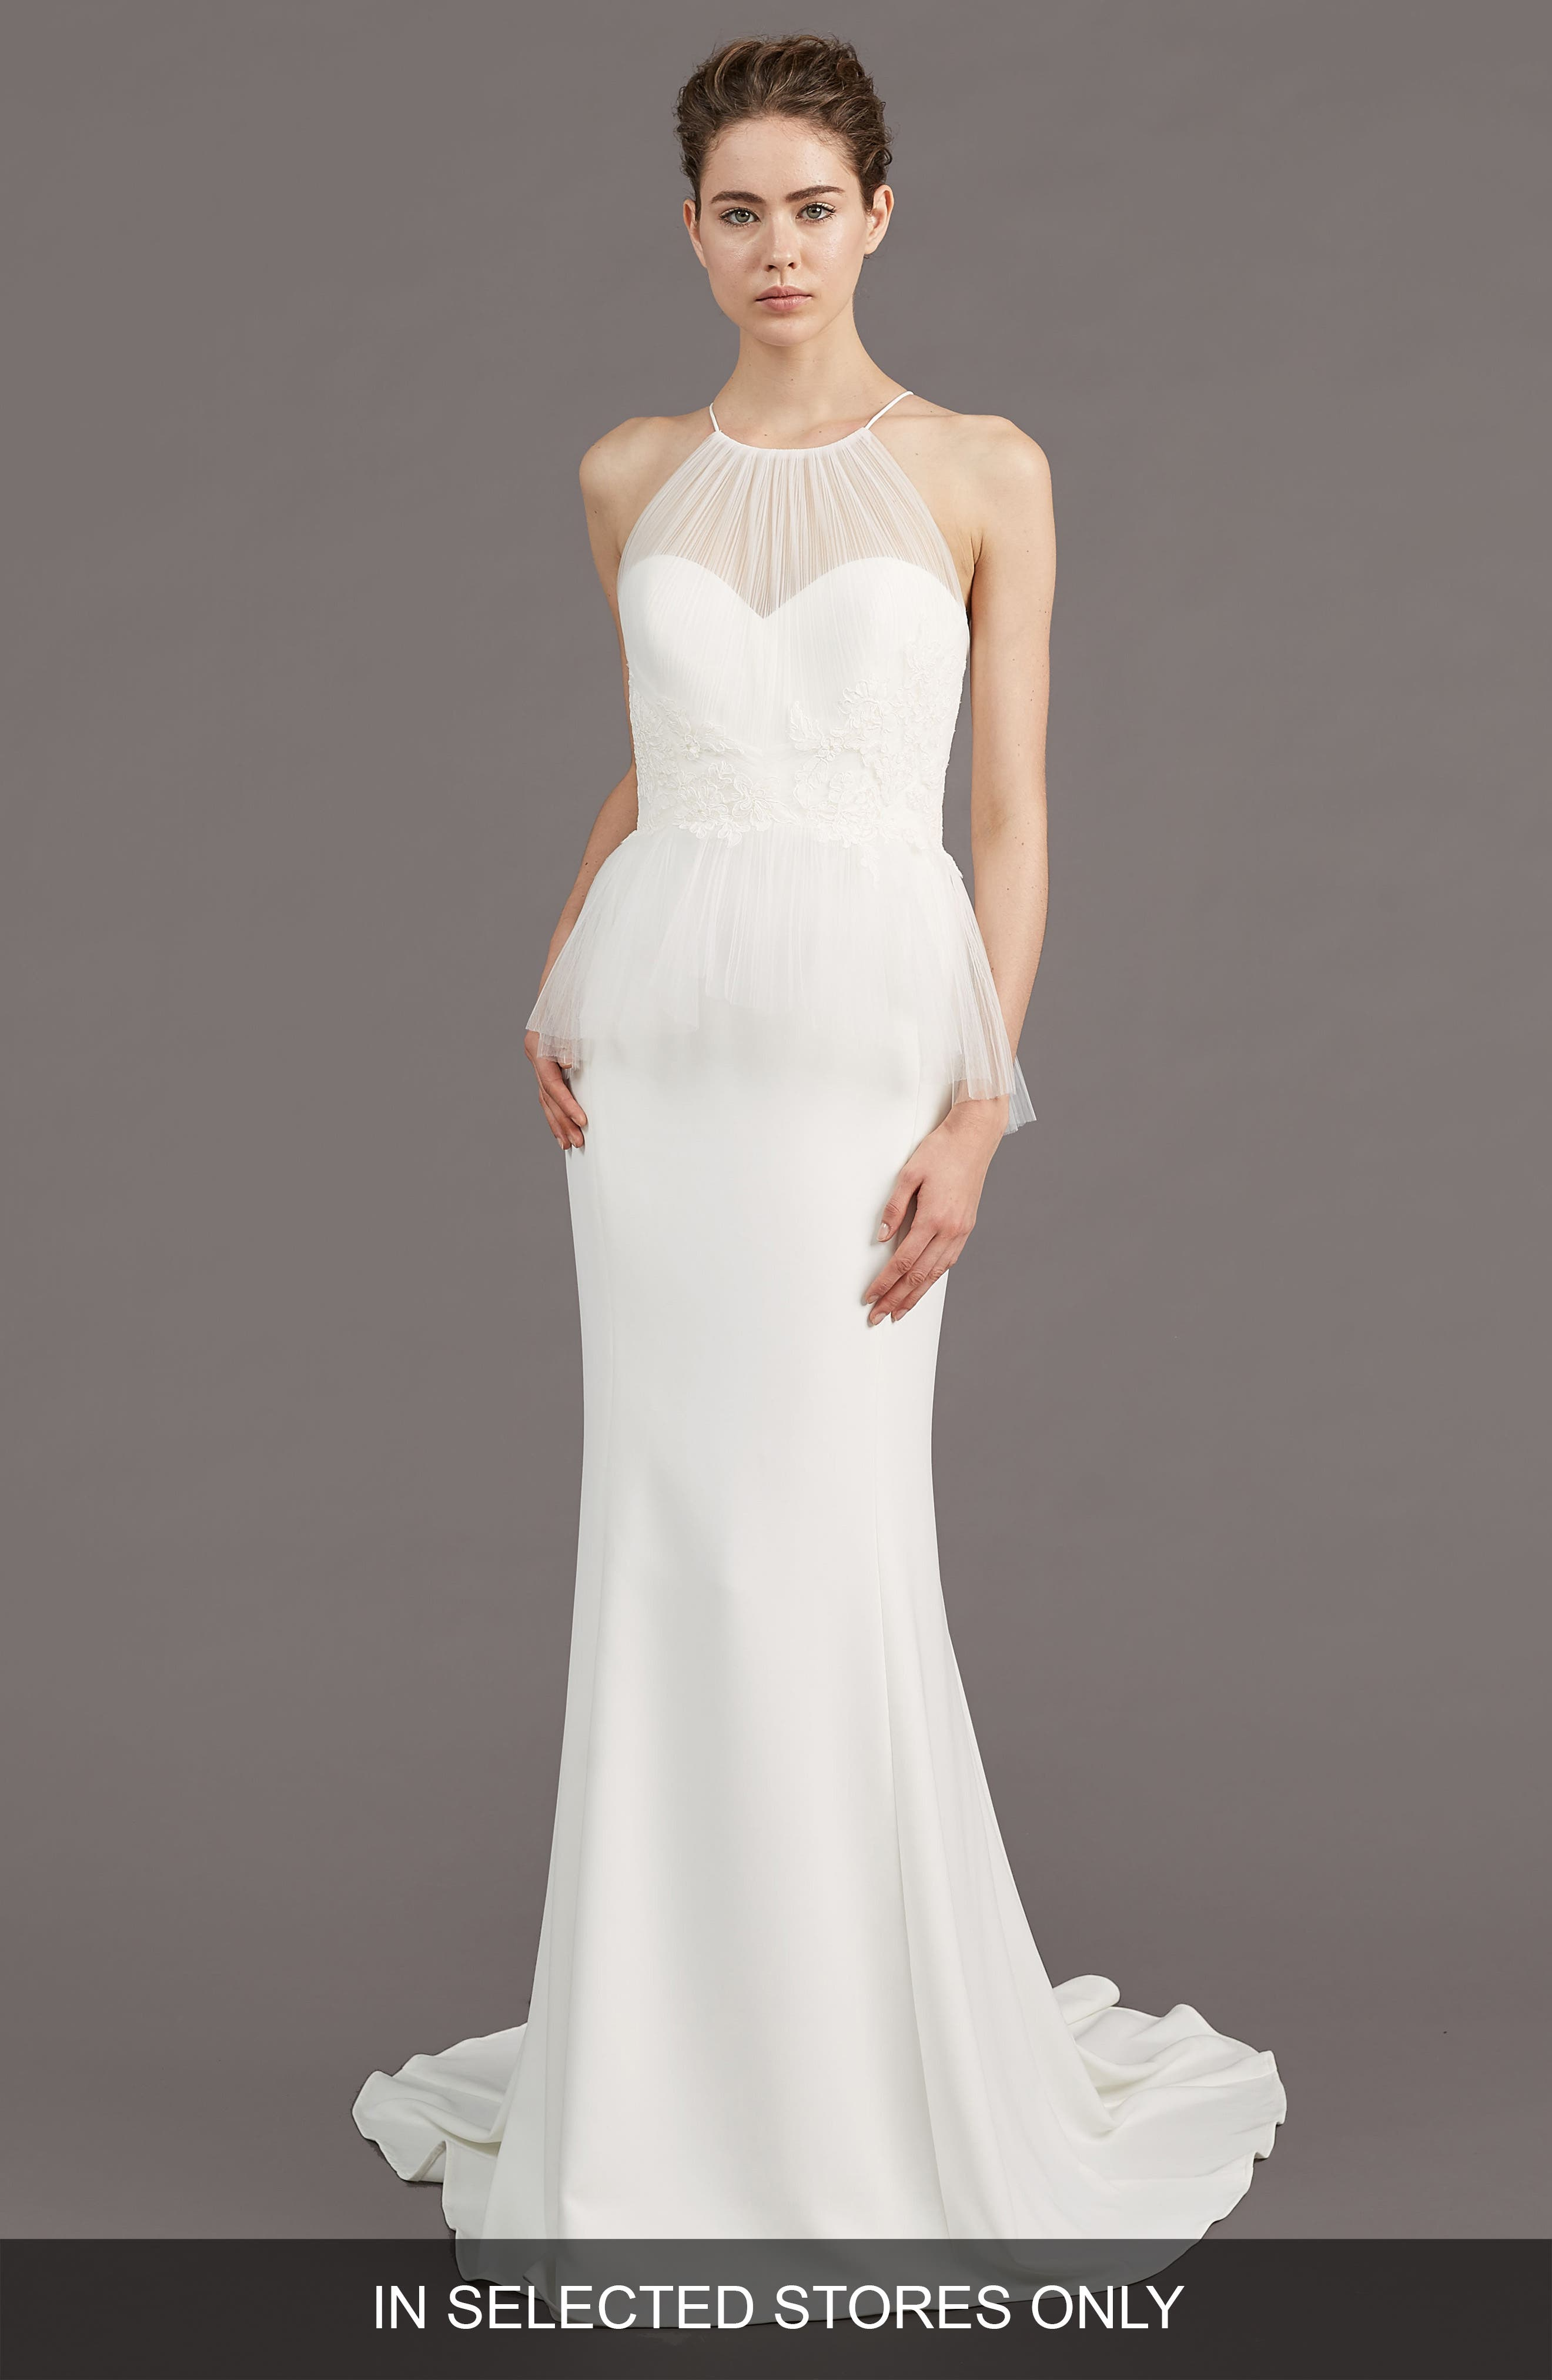 Ruby Crepe Peplum Gown,                             Main thumbnail 1, color,                             IVORY